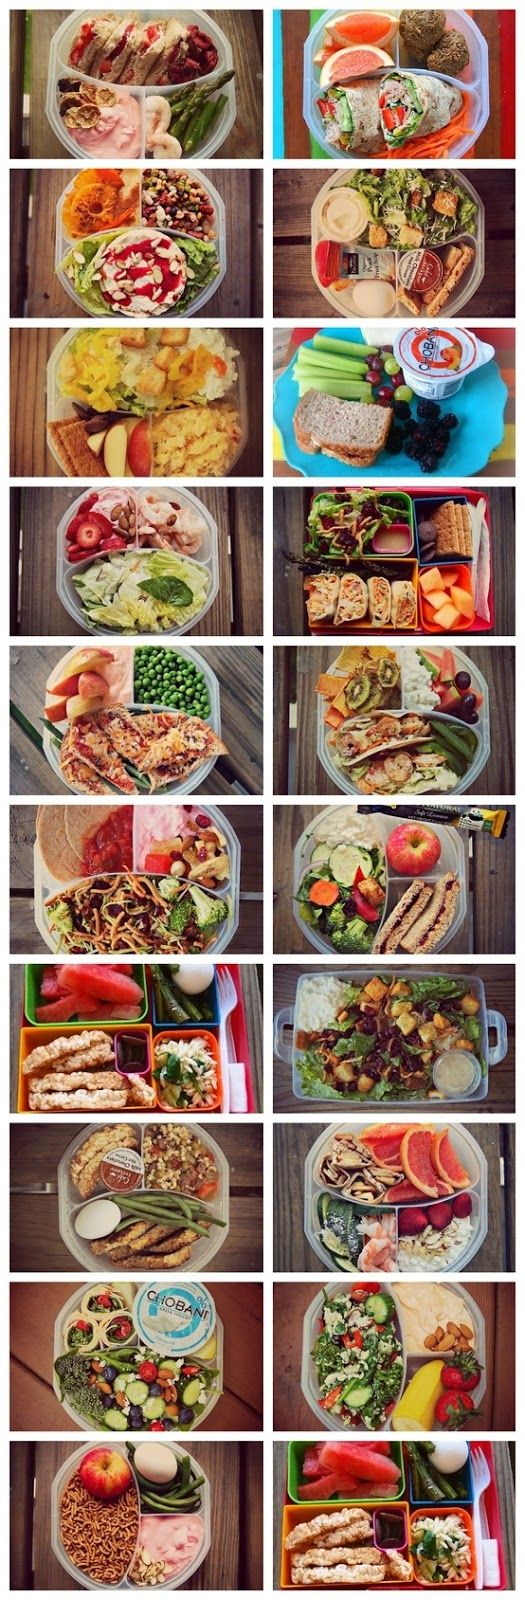 Healthy Lunch Ideas ONLY.  This is only an image pin.  The link is bad.  But I found it sparked my thinking to look at the different combos.